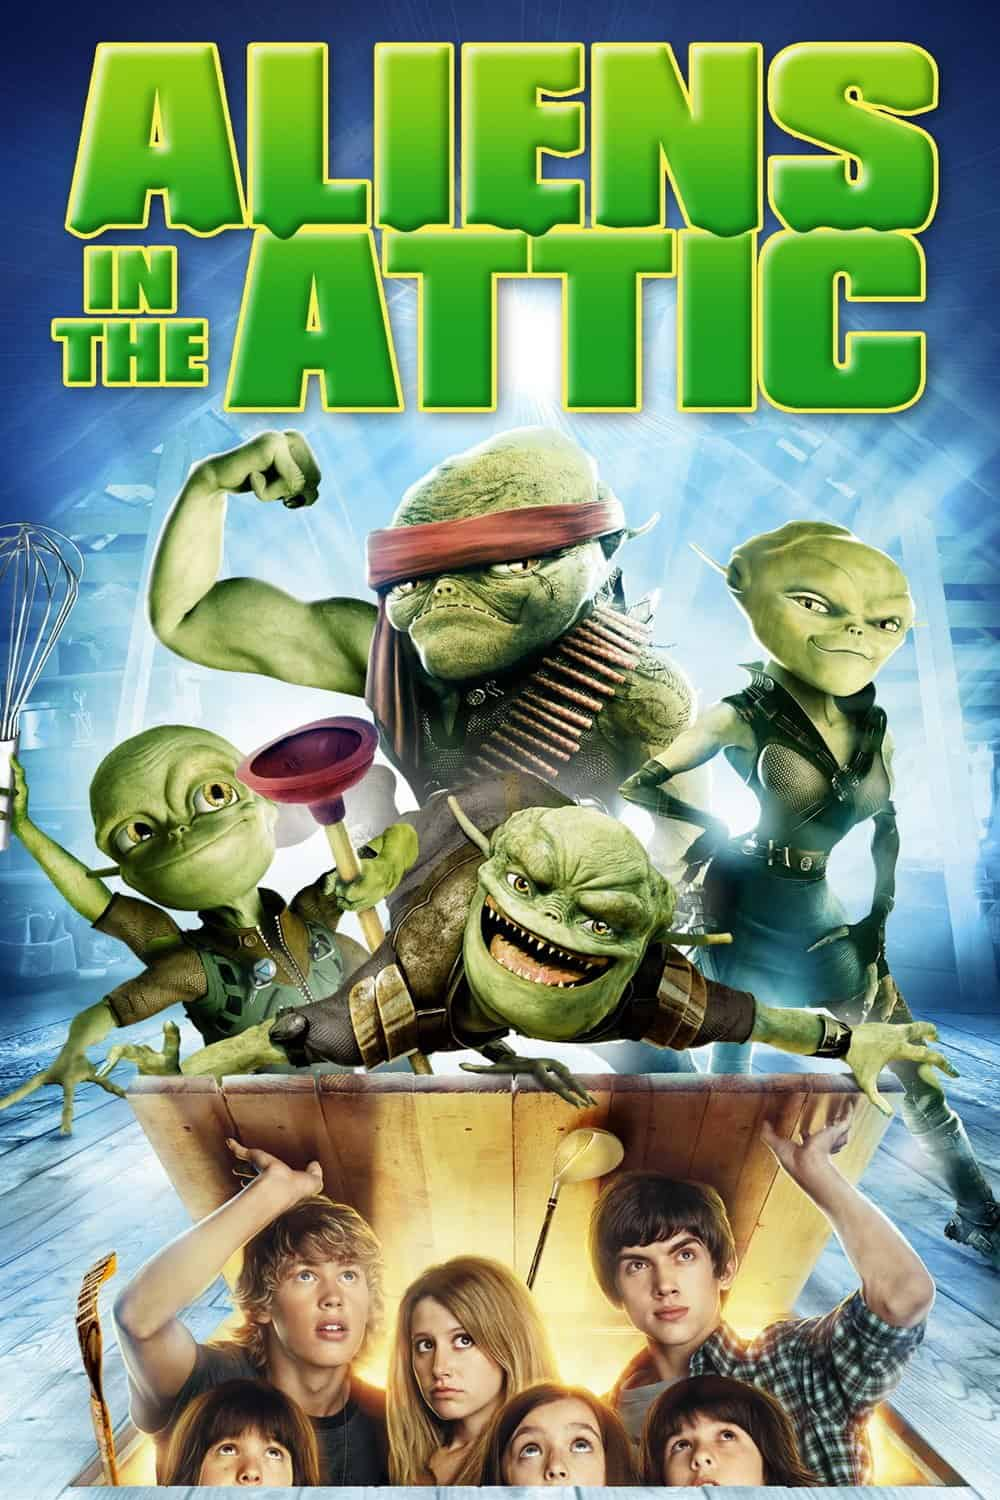 Aliens in the Attic, 2009